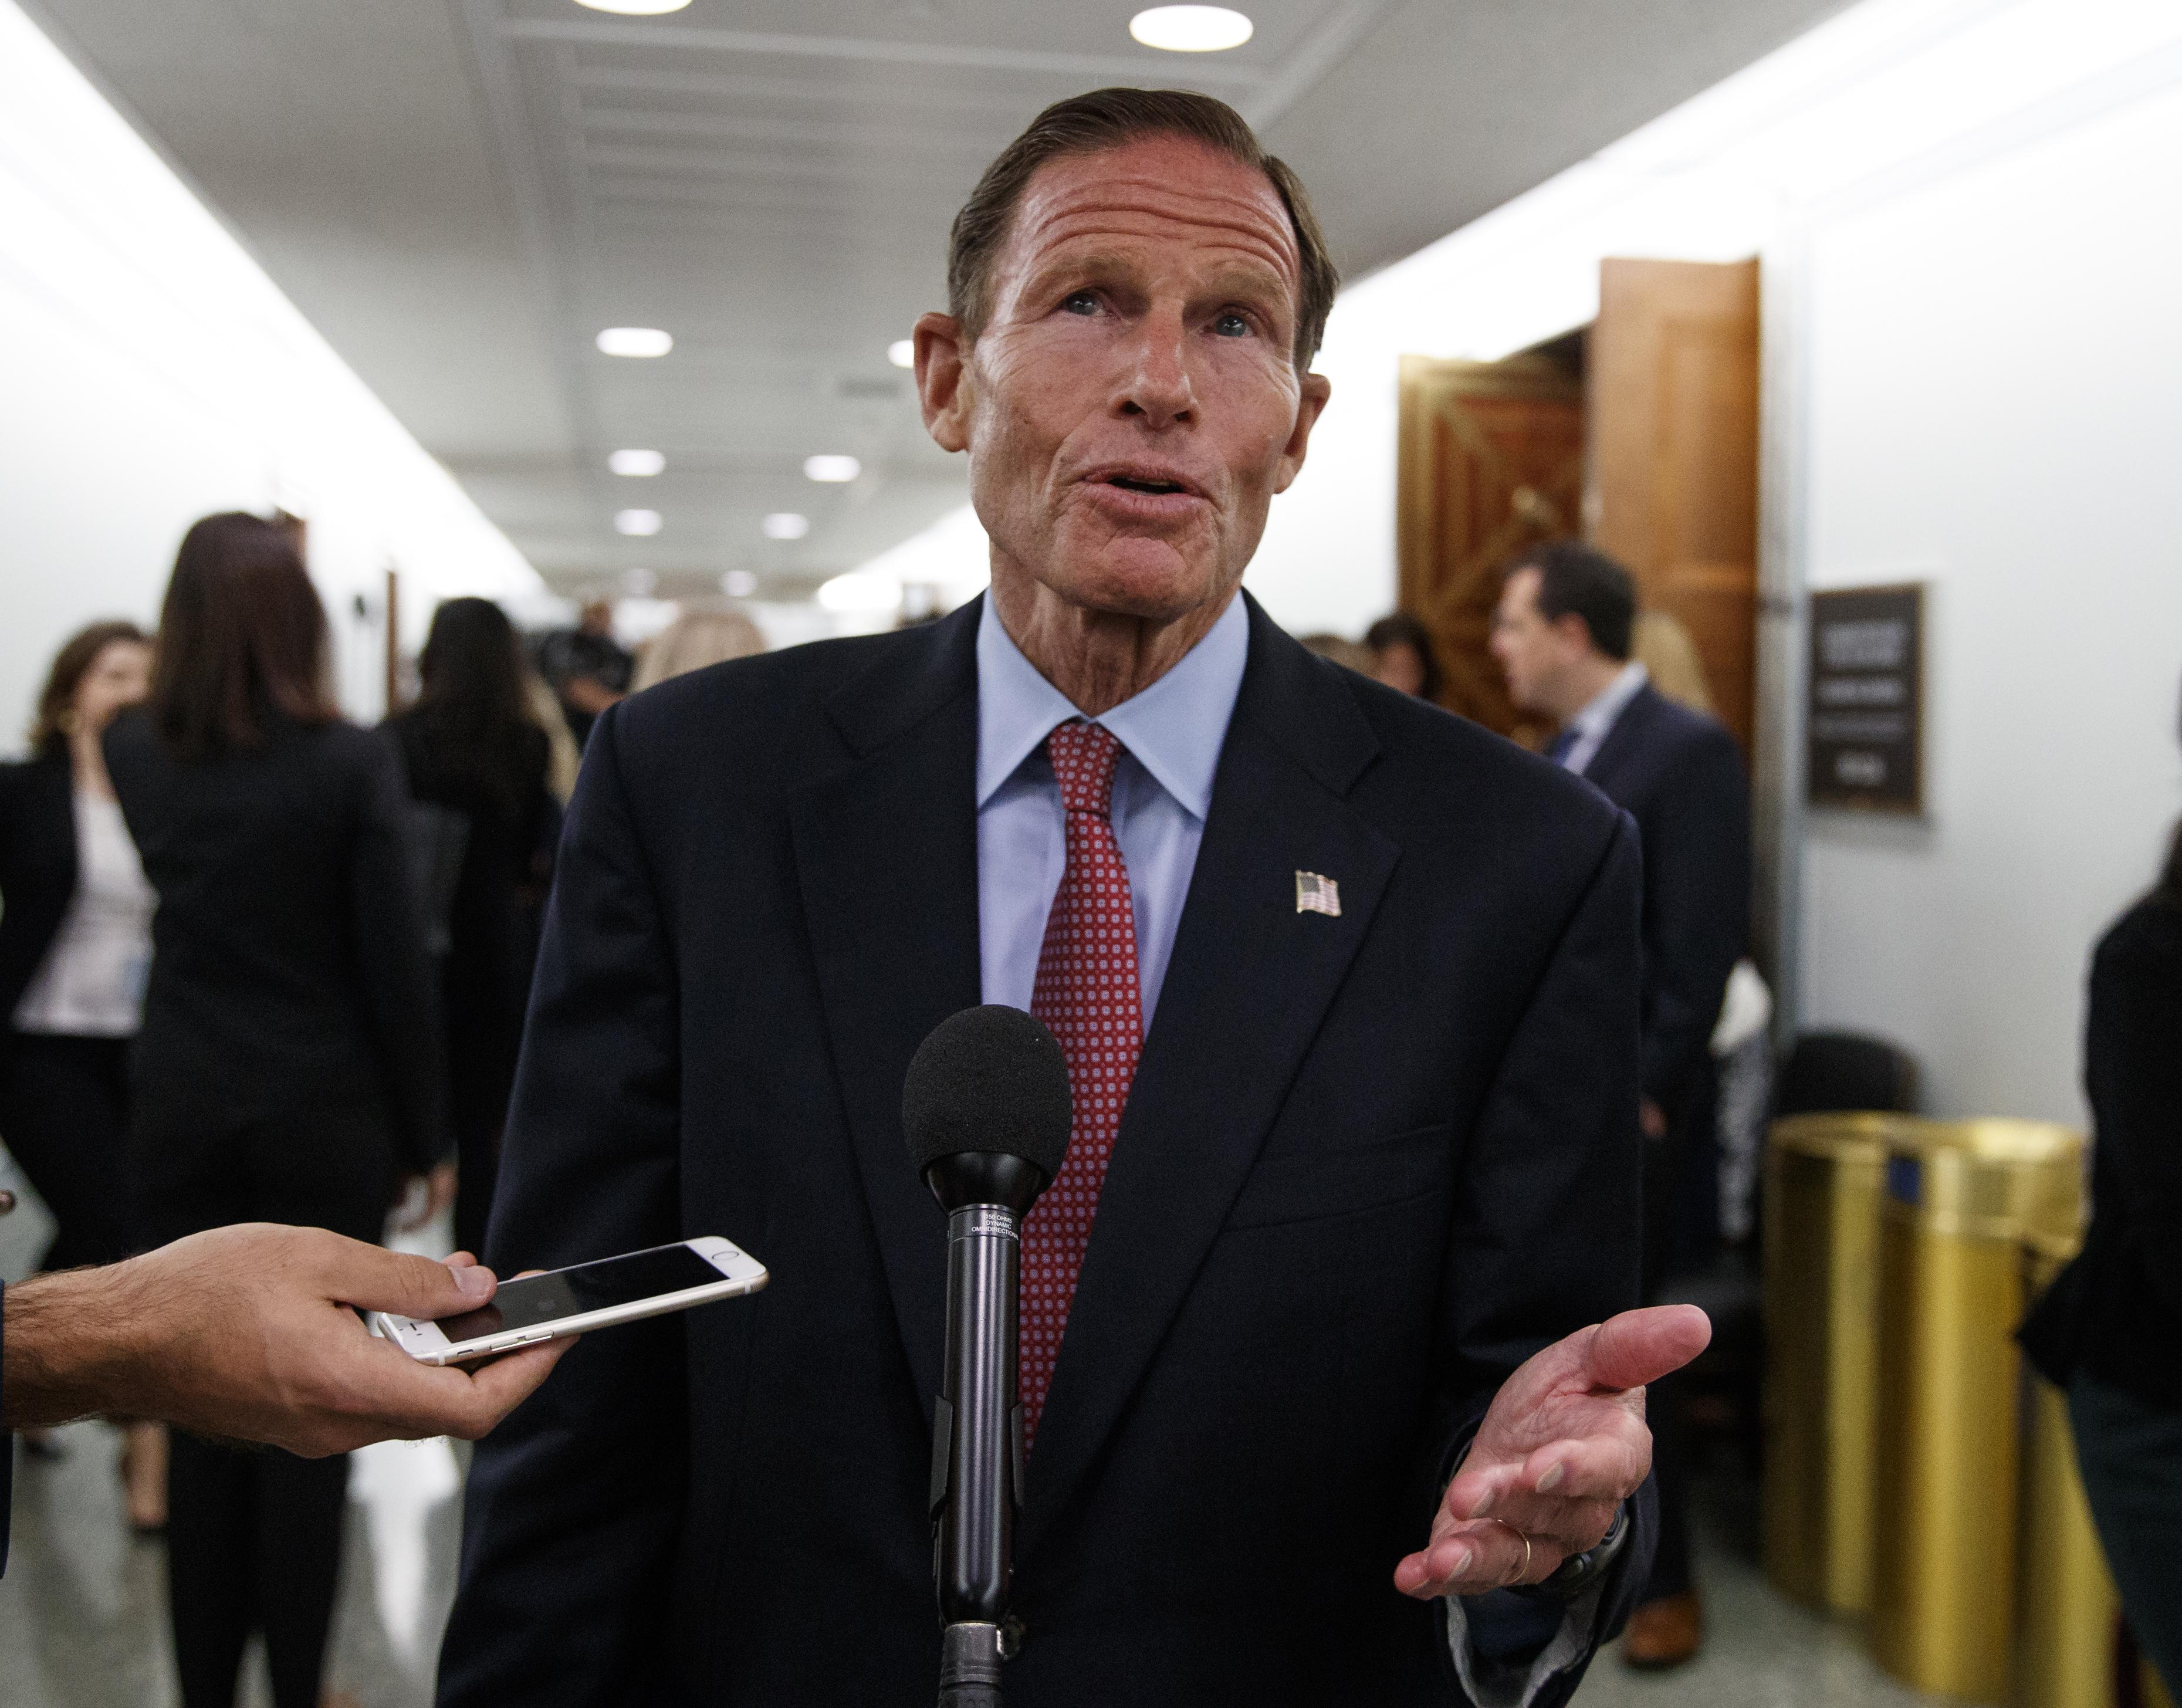 Sen. Blumenthal calls for Mueller's congressional testimony: 'Part of his job'